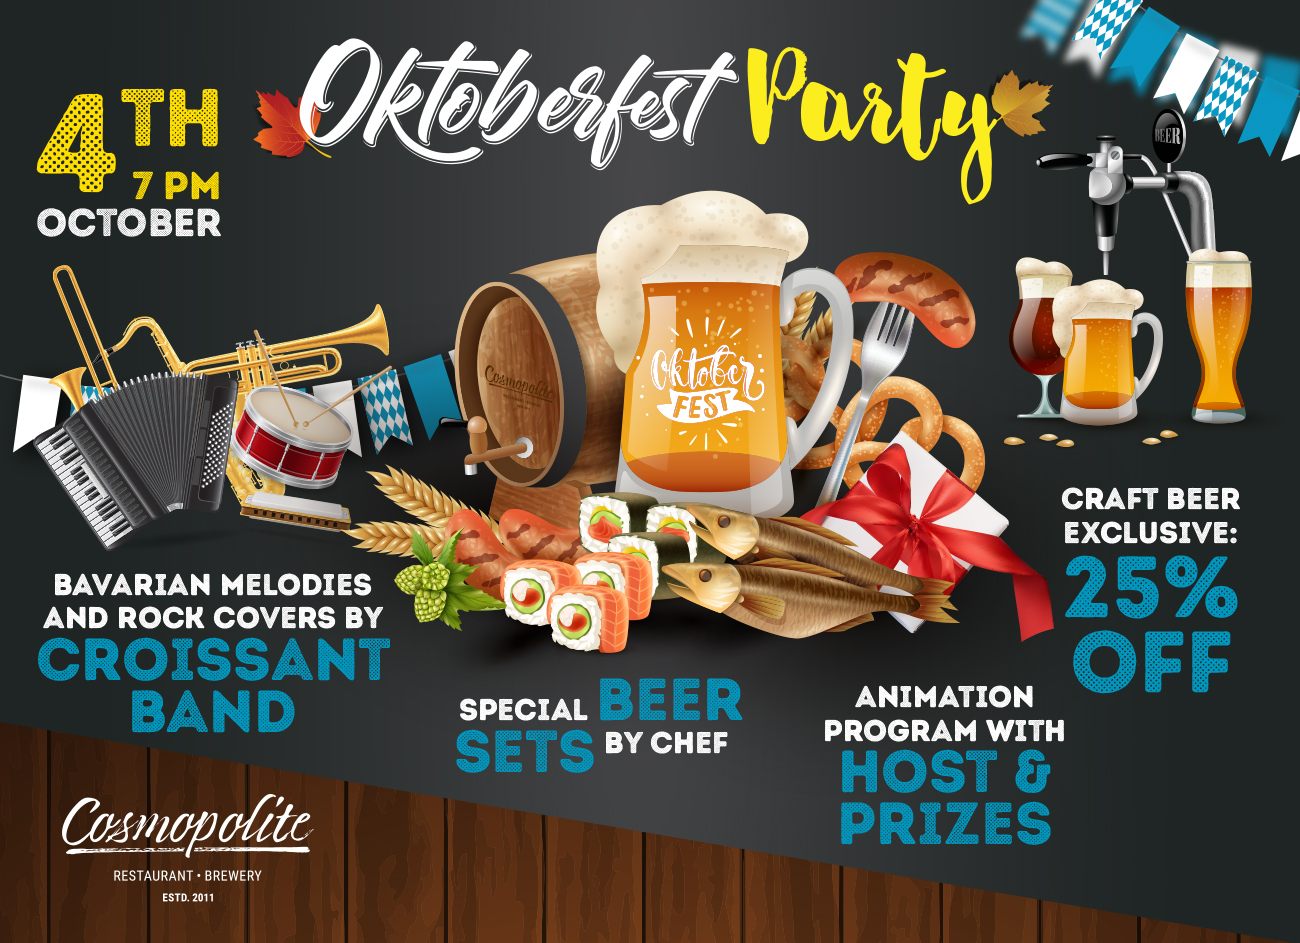 Oktoberfest Party at Cosmopolite!